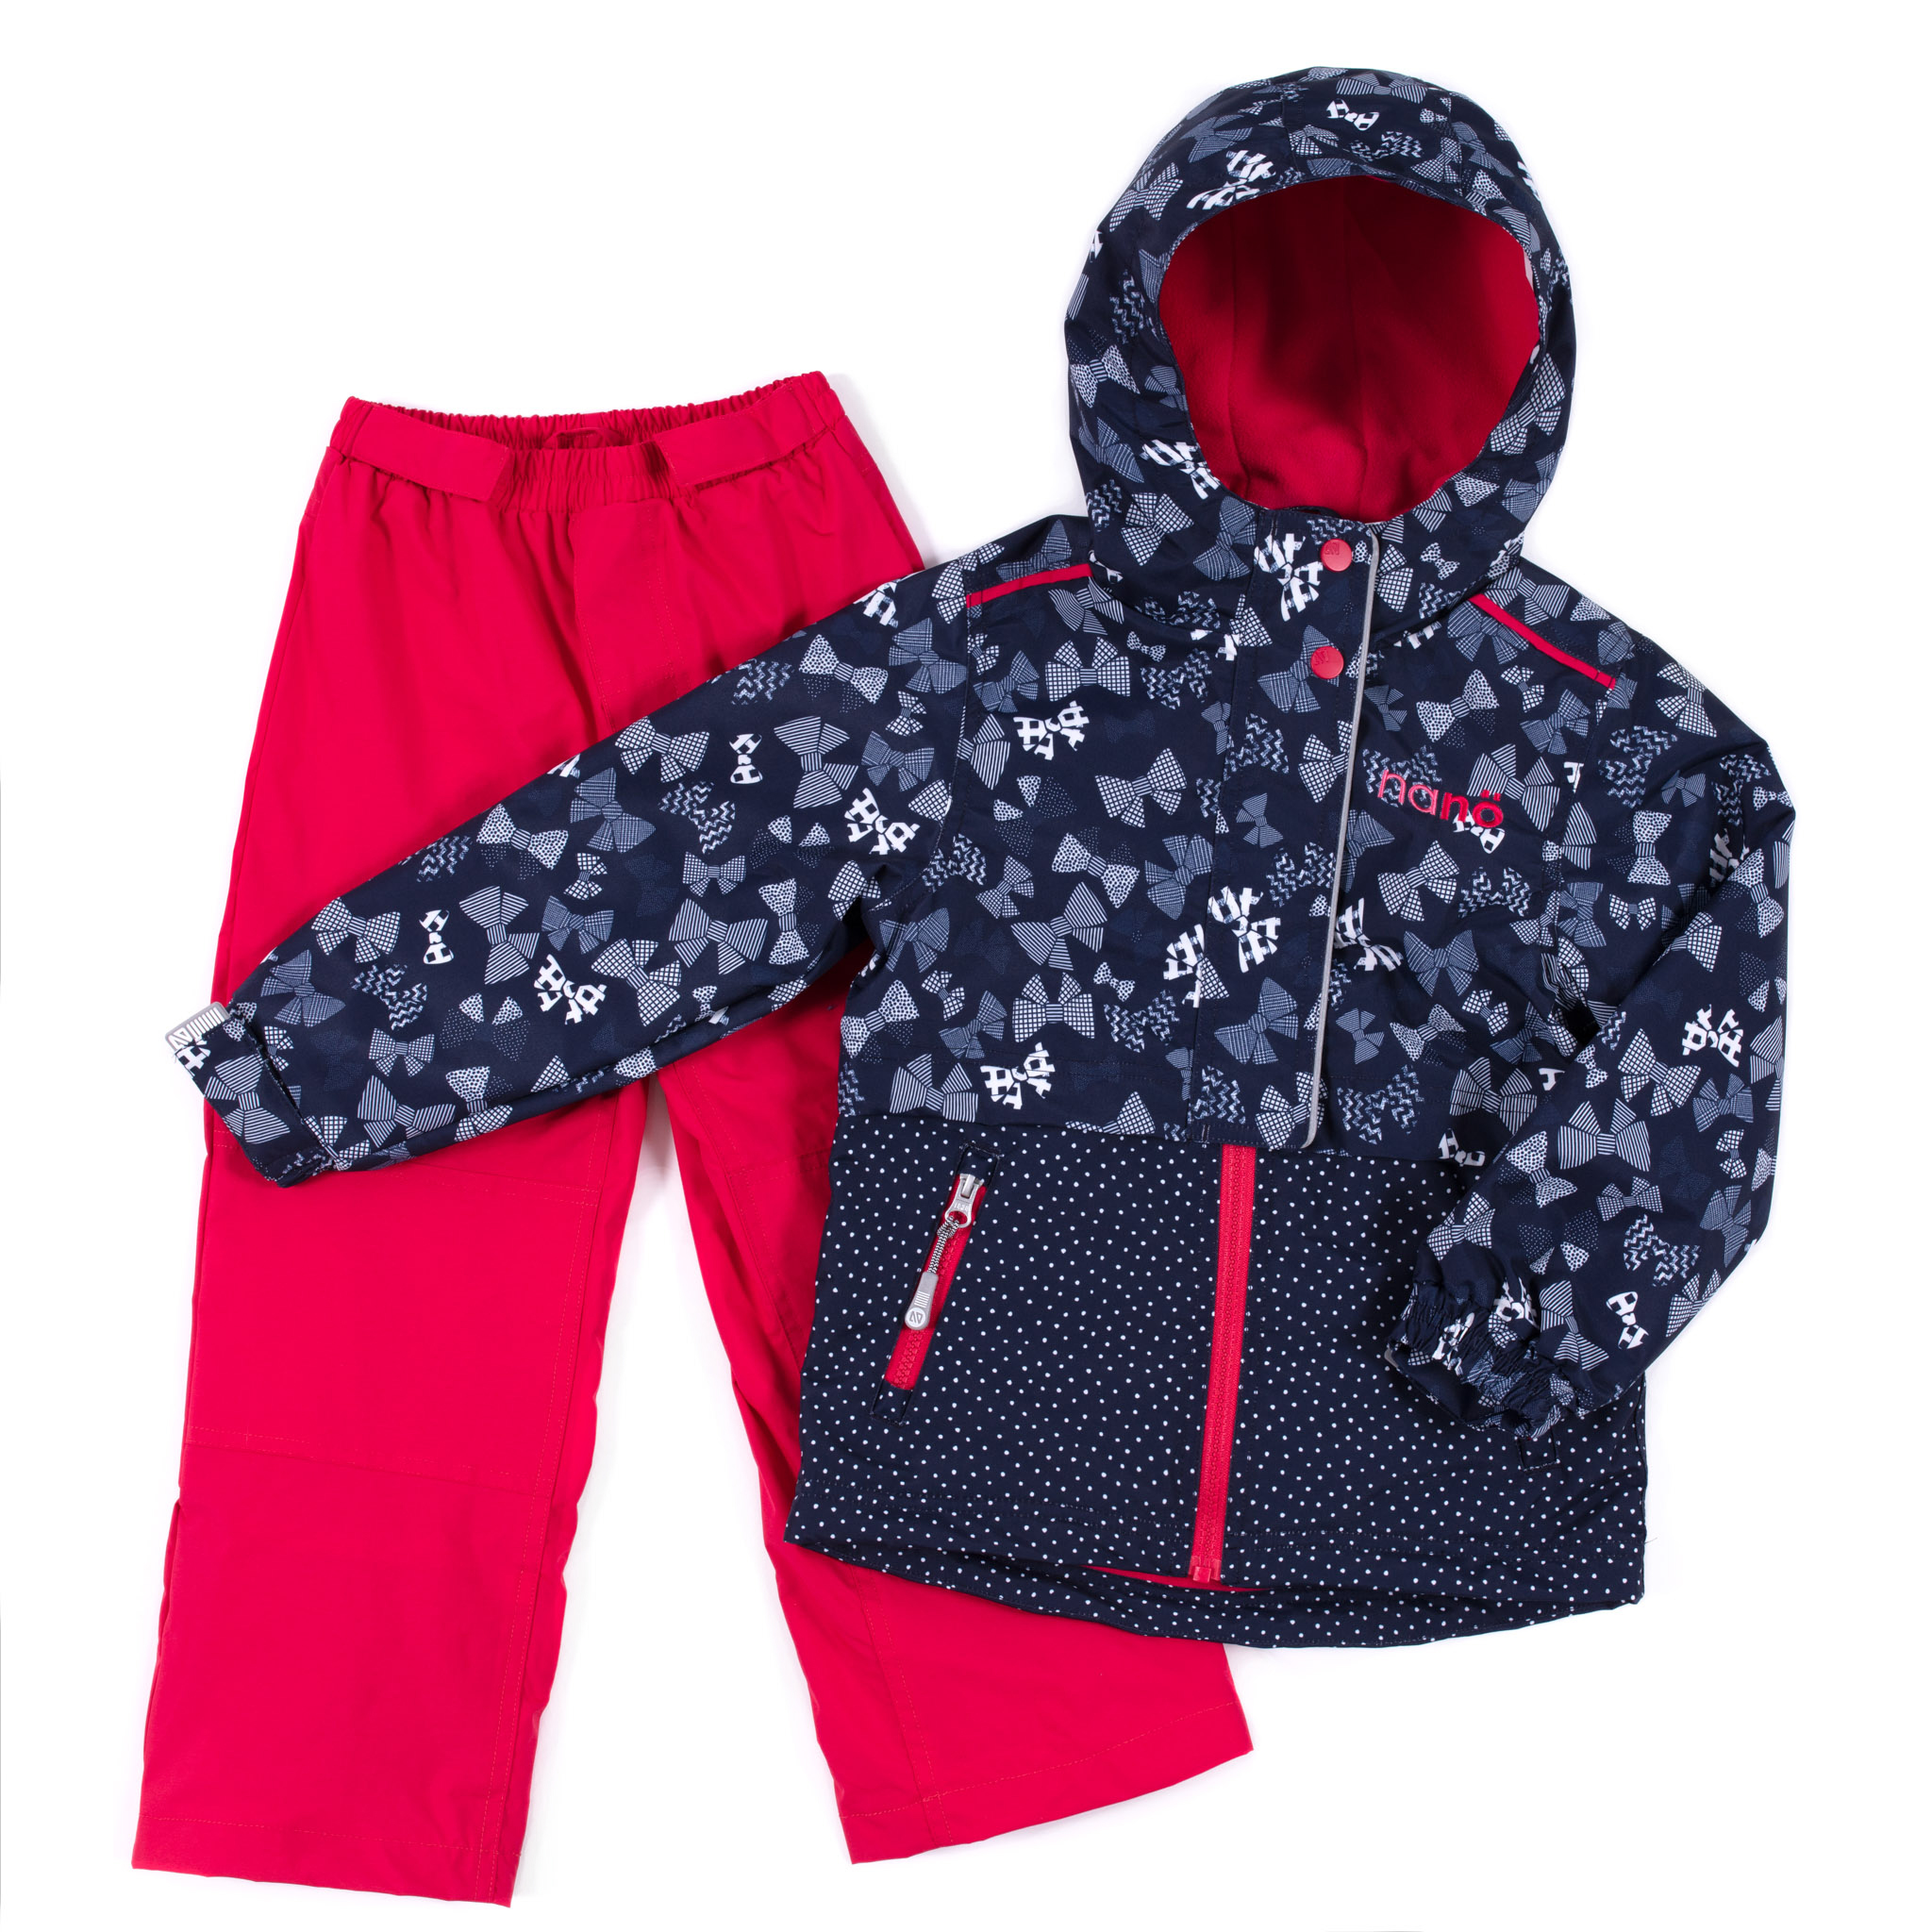 2 pcs outerwear Florence - Navy - Girls